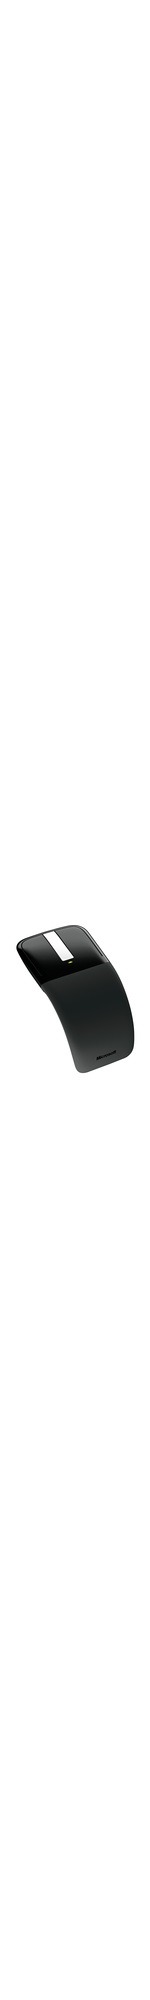 Microsoft Arc Touch Mouse - BlueTrack - Wireless - Black